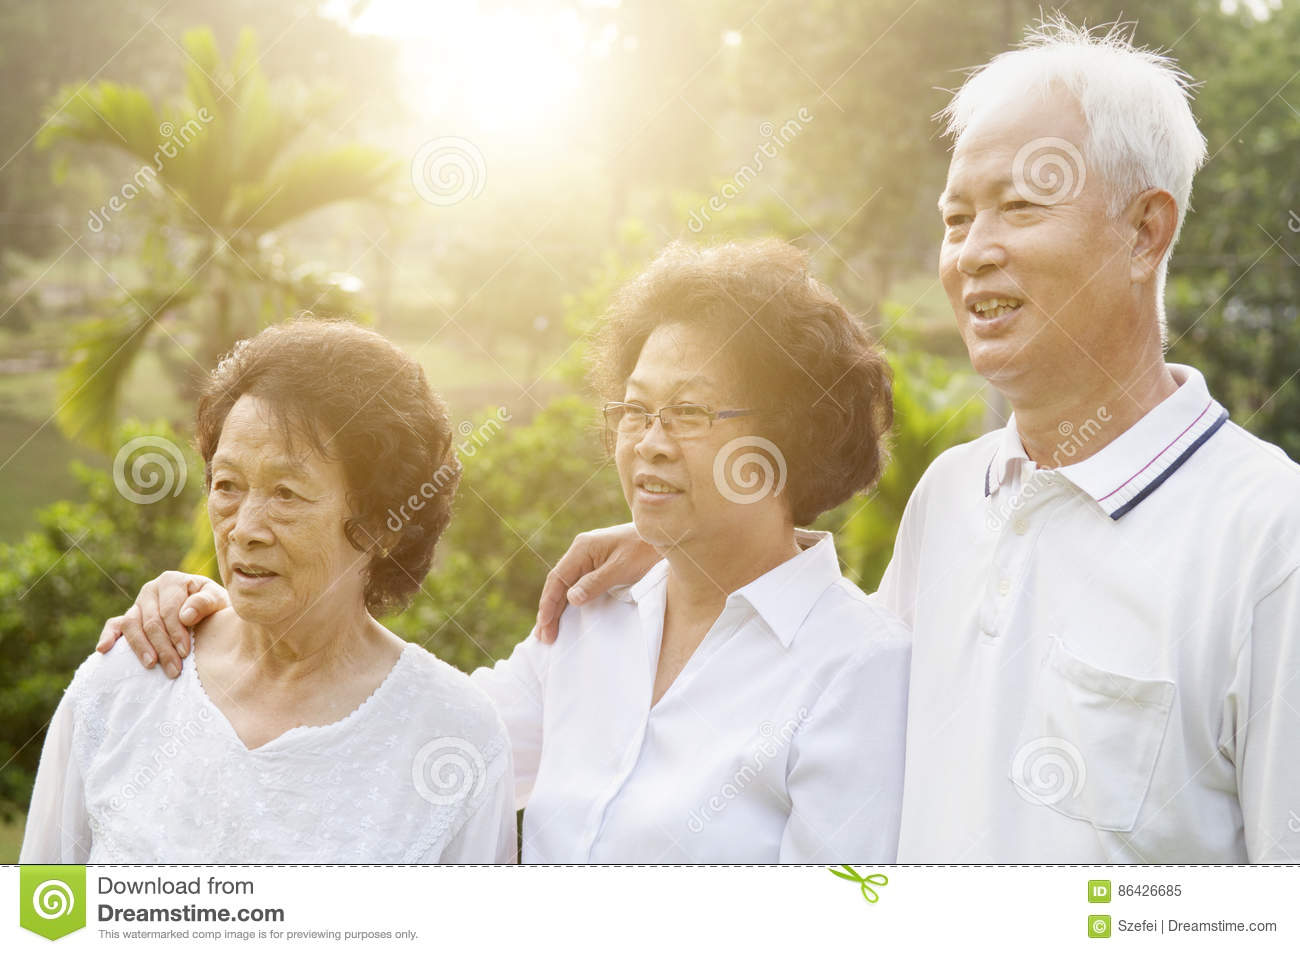 Group of Asian seniors people